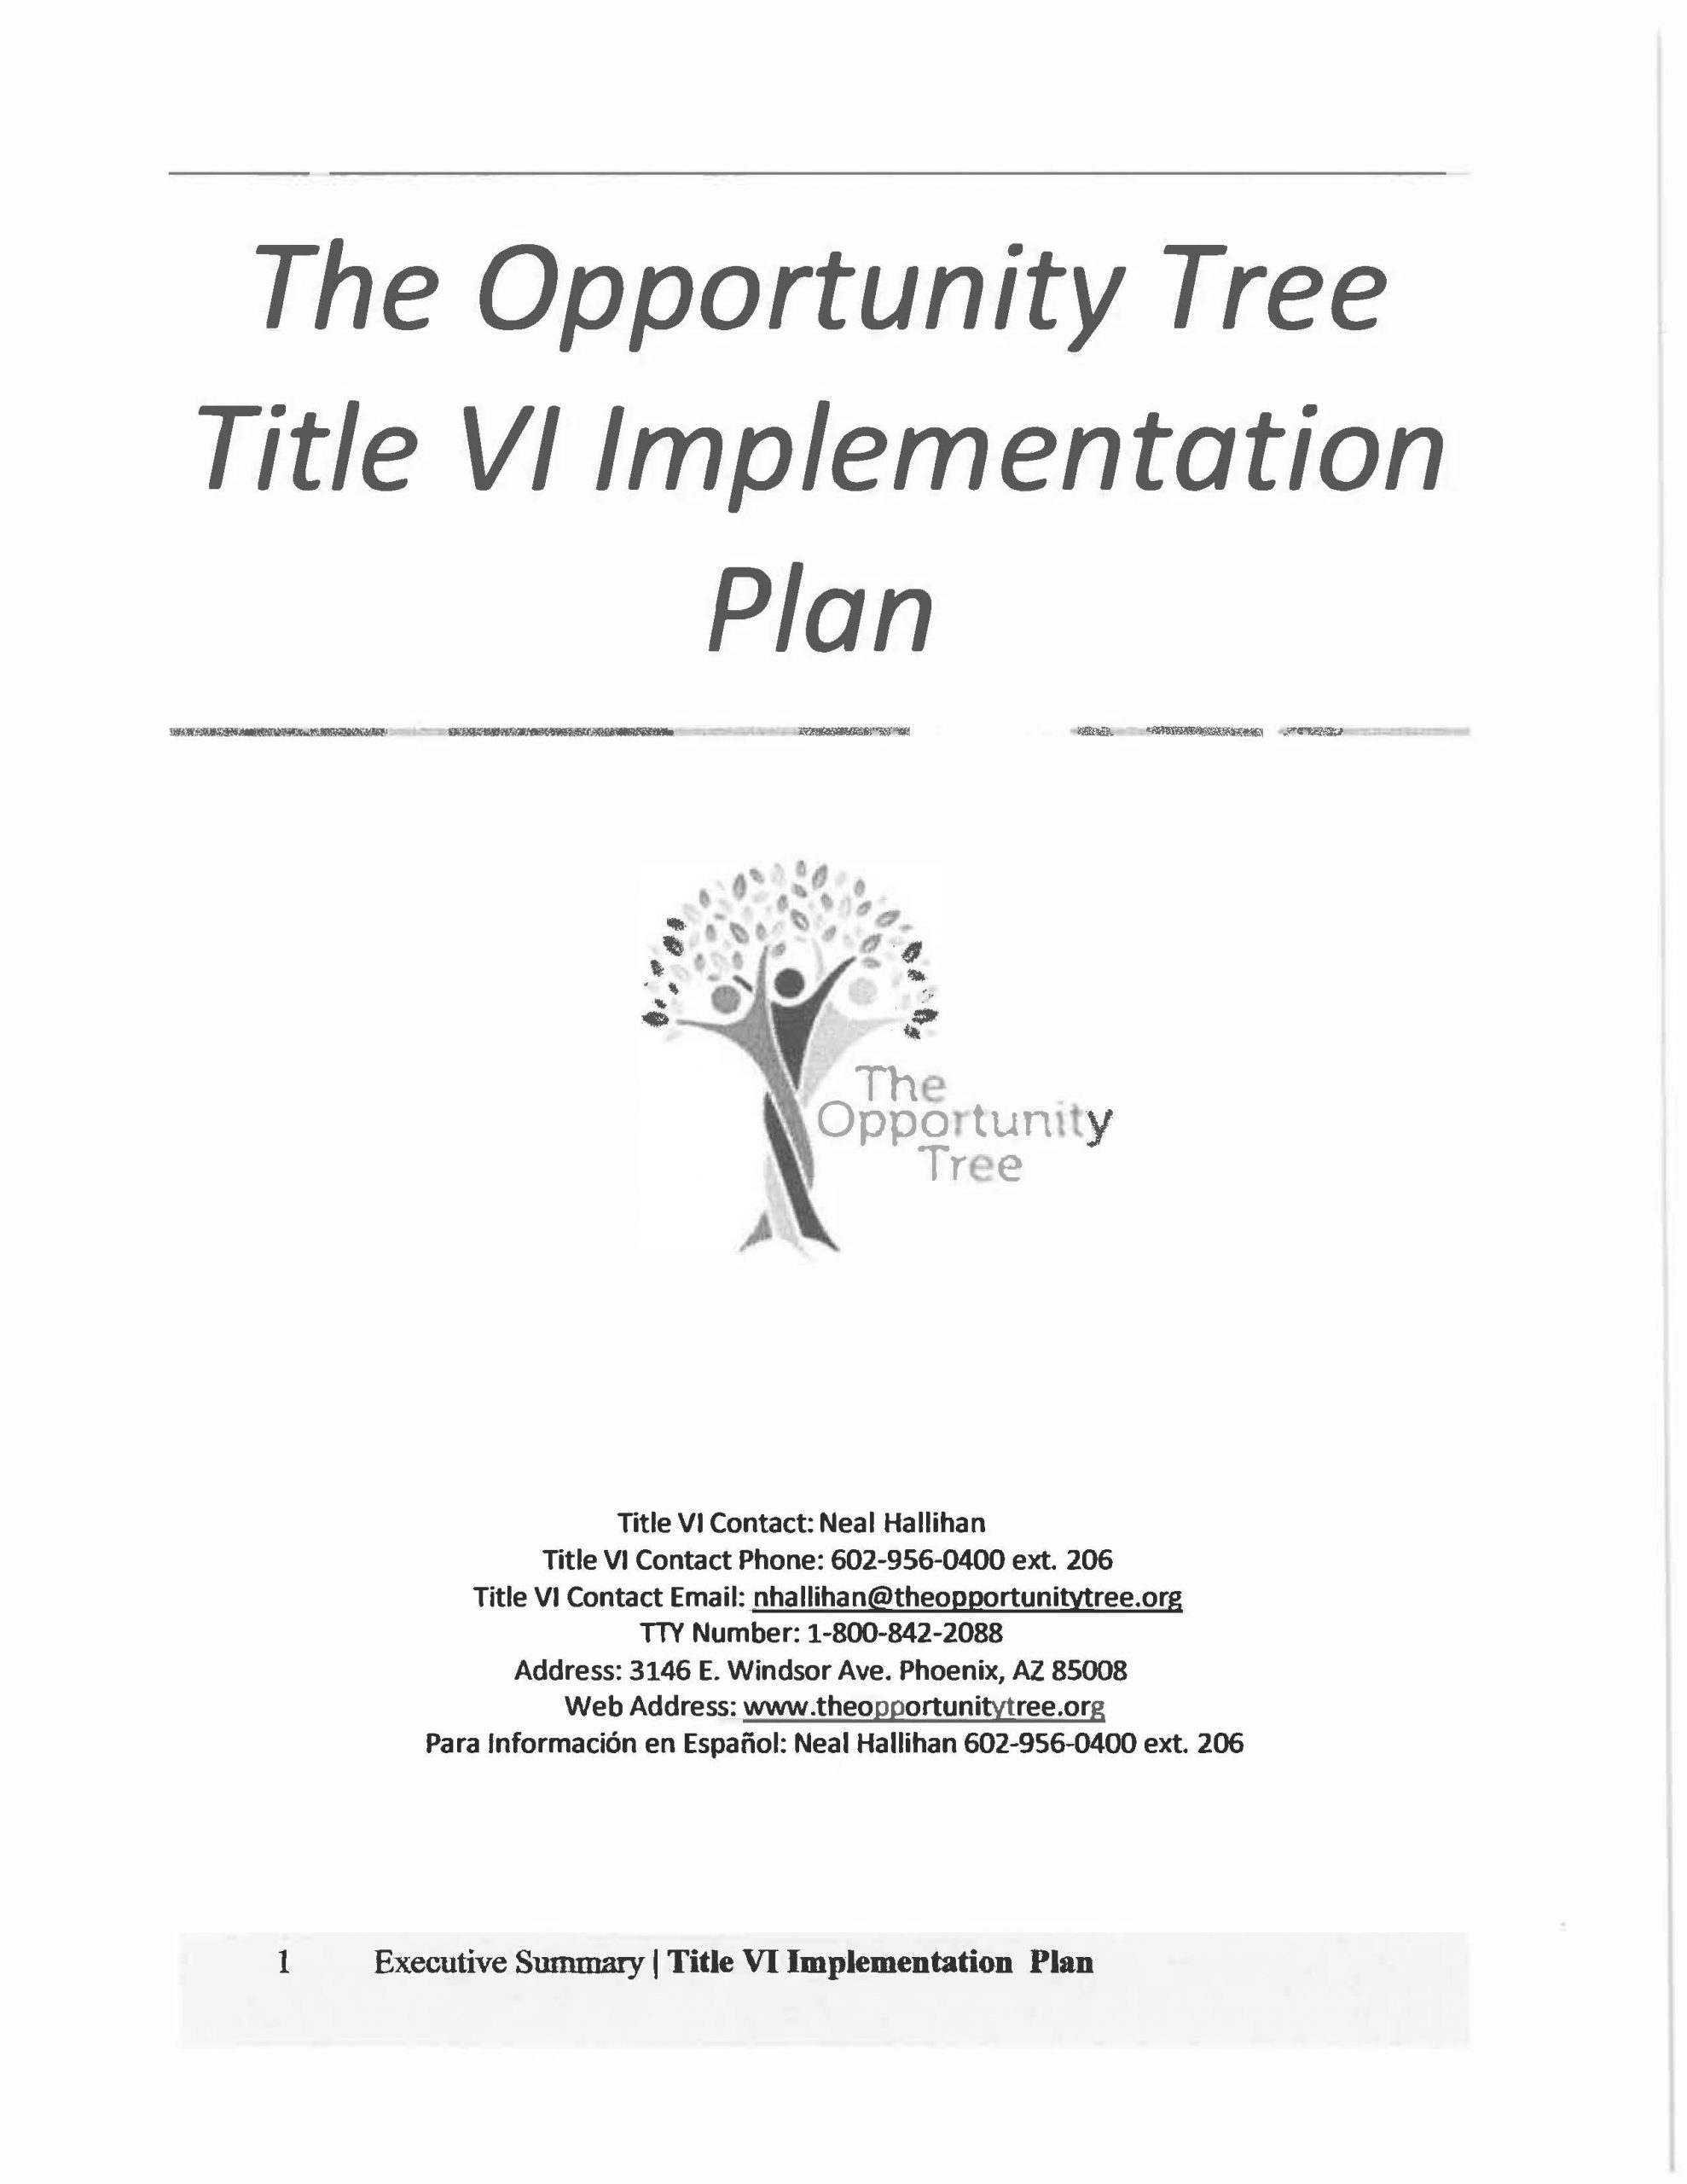 The Opportunity Tree Title VI Plan Final2018-2021_Page_01